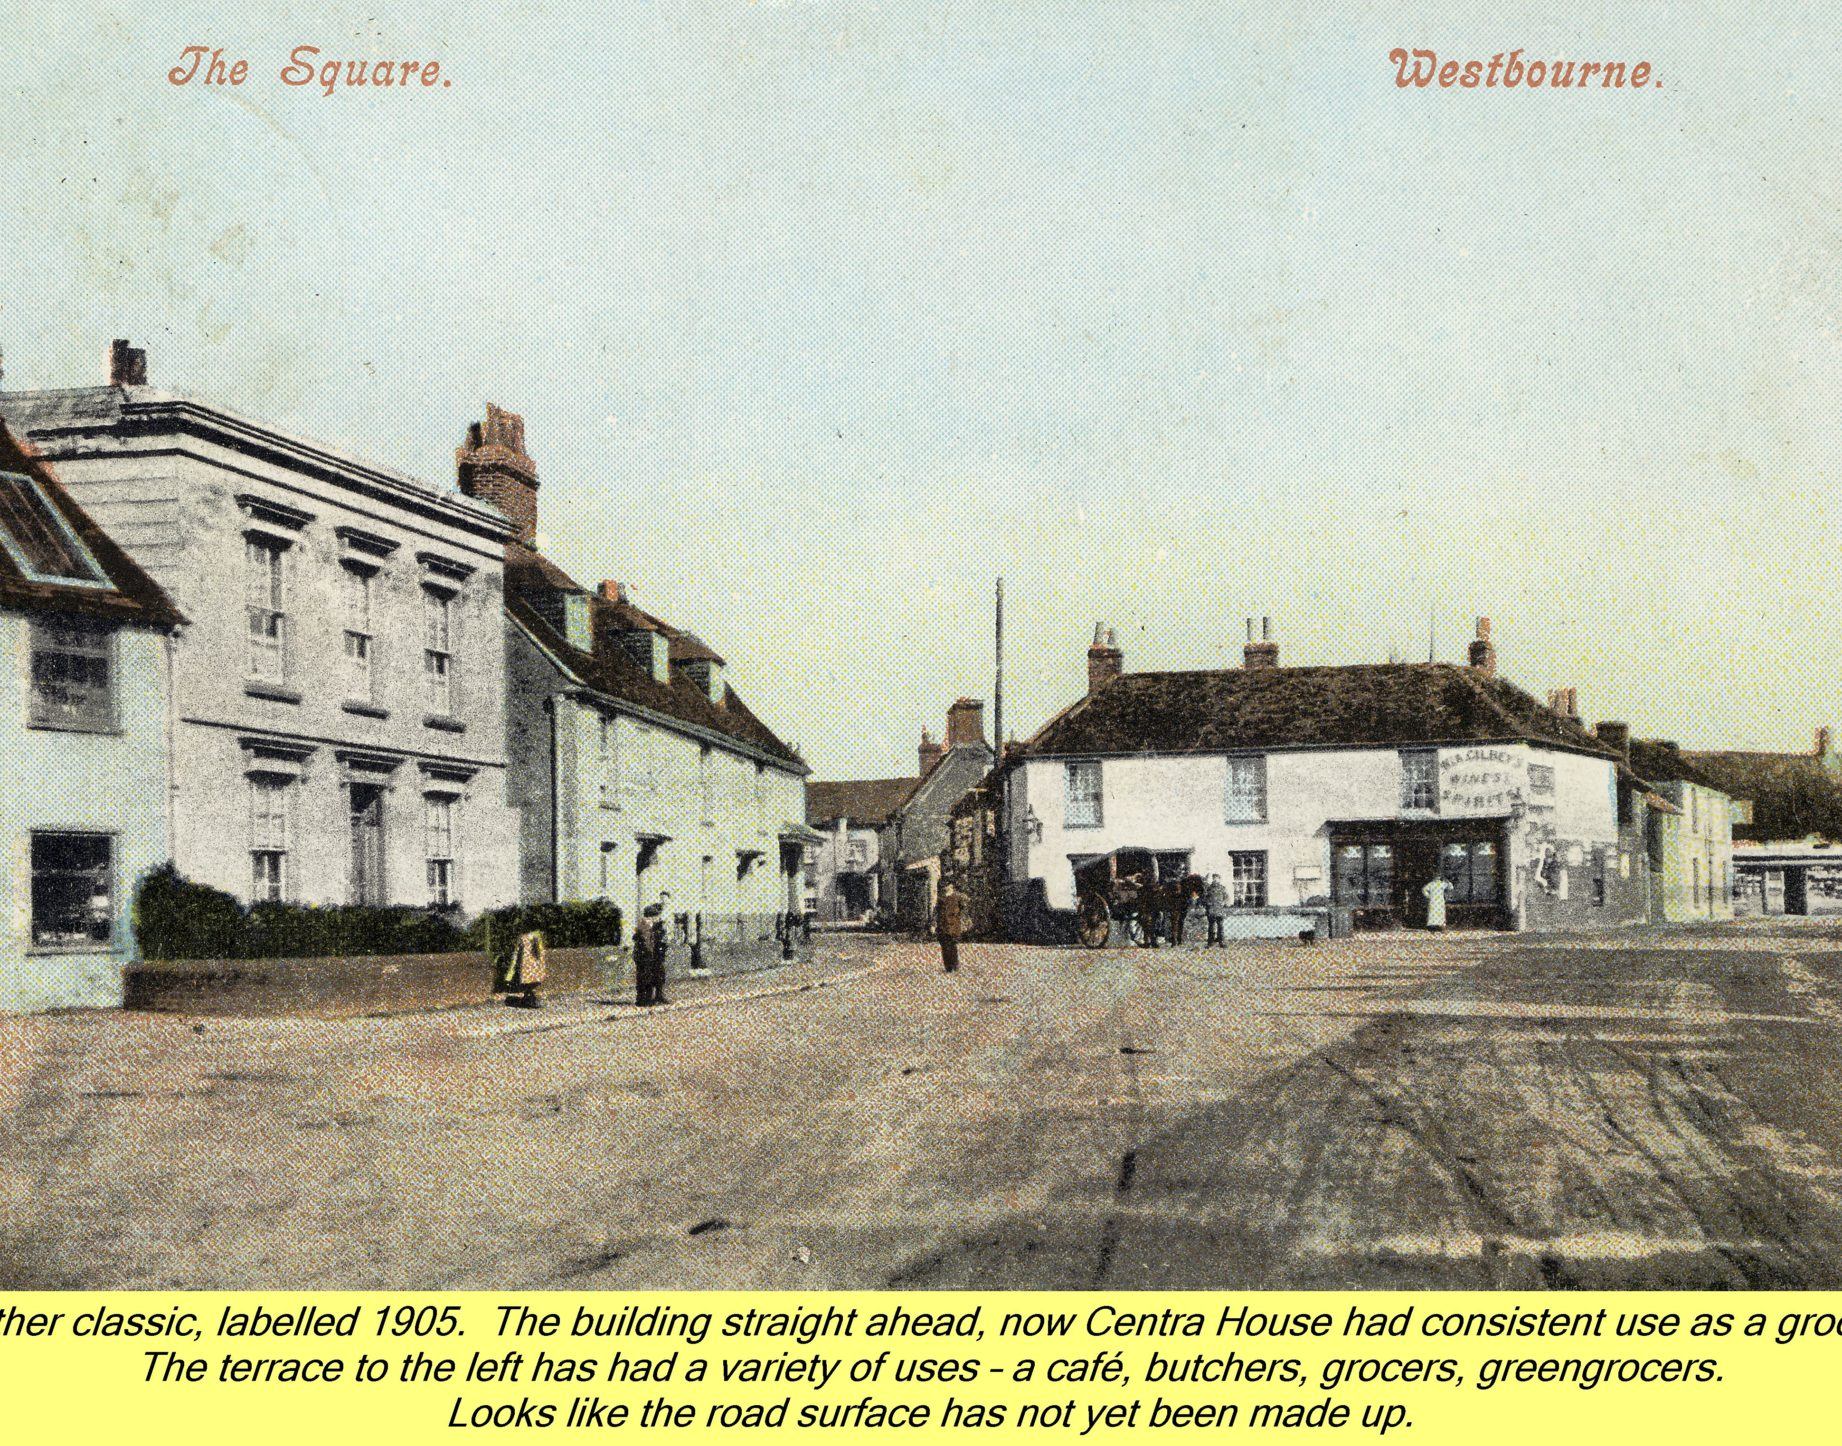 WESTBOURNE HISTORY PHOTO, SQUARE, COUNTRY STORES, CENTRA, SHOPS, 1905